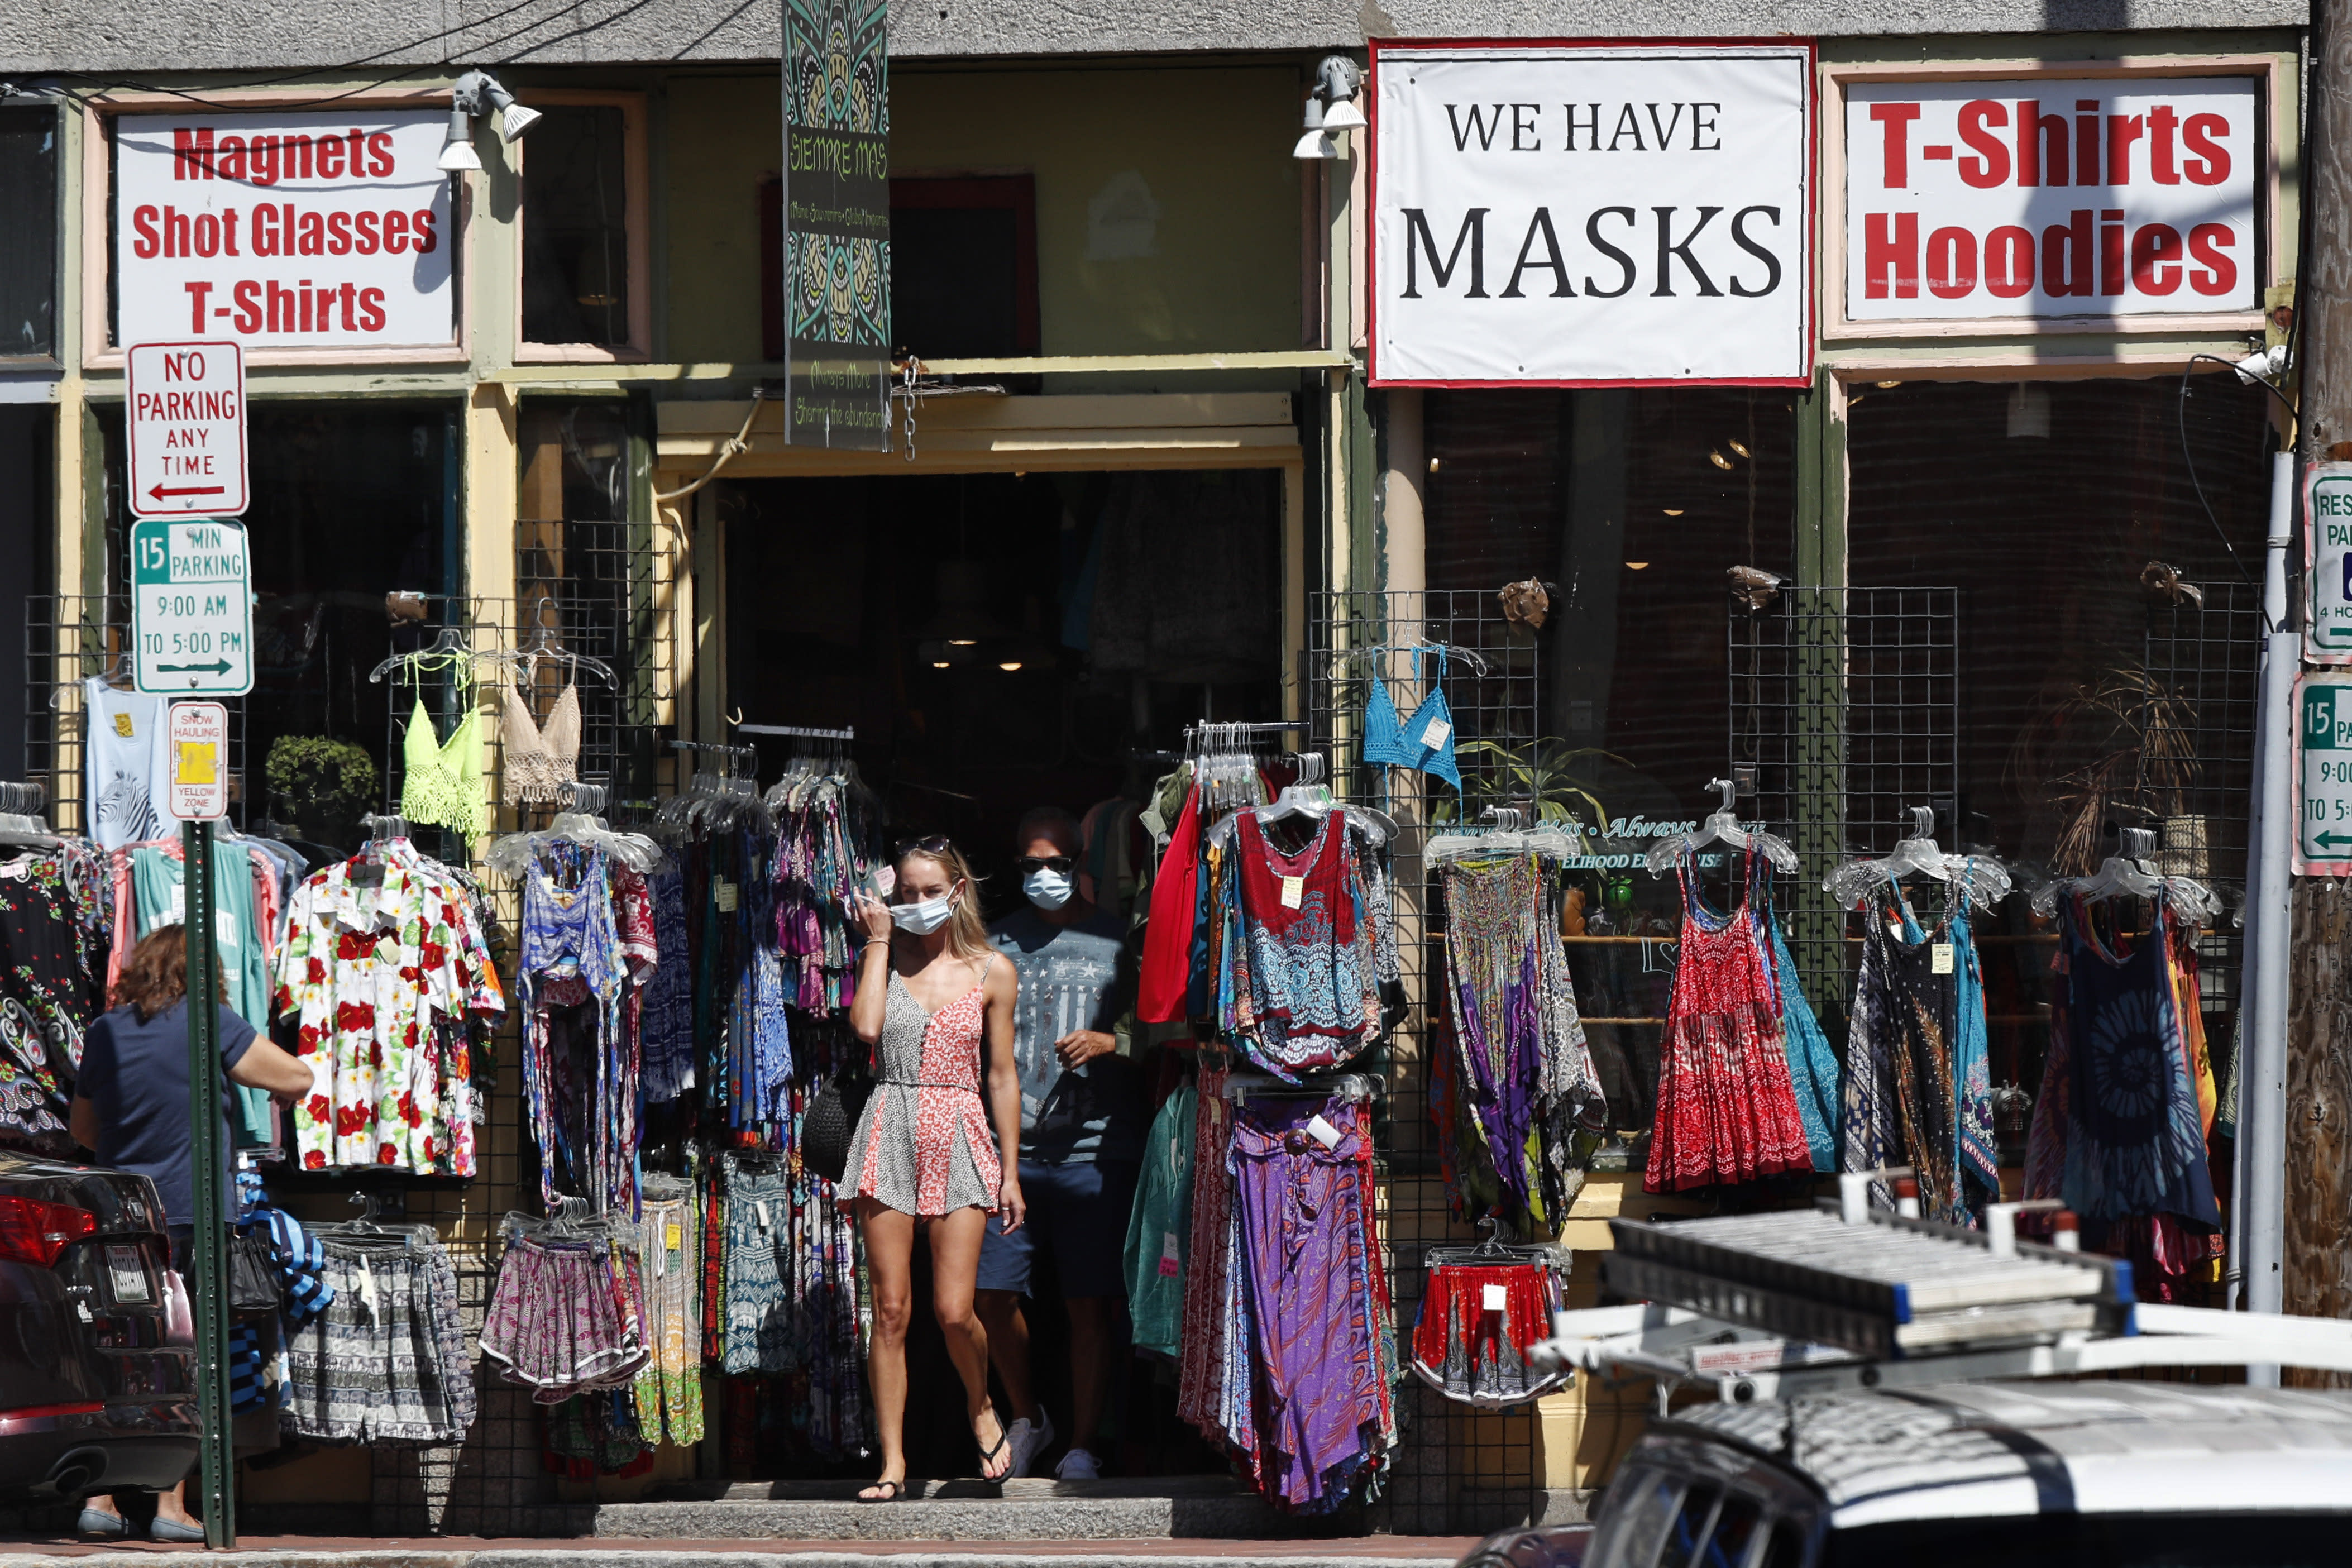 Shoppers leave a clothing shop that now also sells masks to help fight the spread of the coronavirus, Thursday, July 30, 2020, in Portland, Maine. State officials reported more cases of COVID-19. (AP Photo/Robert F. Bukaty)